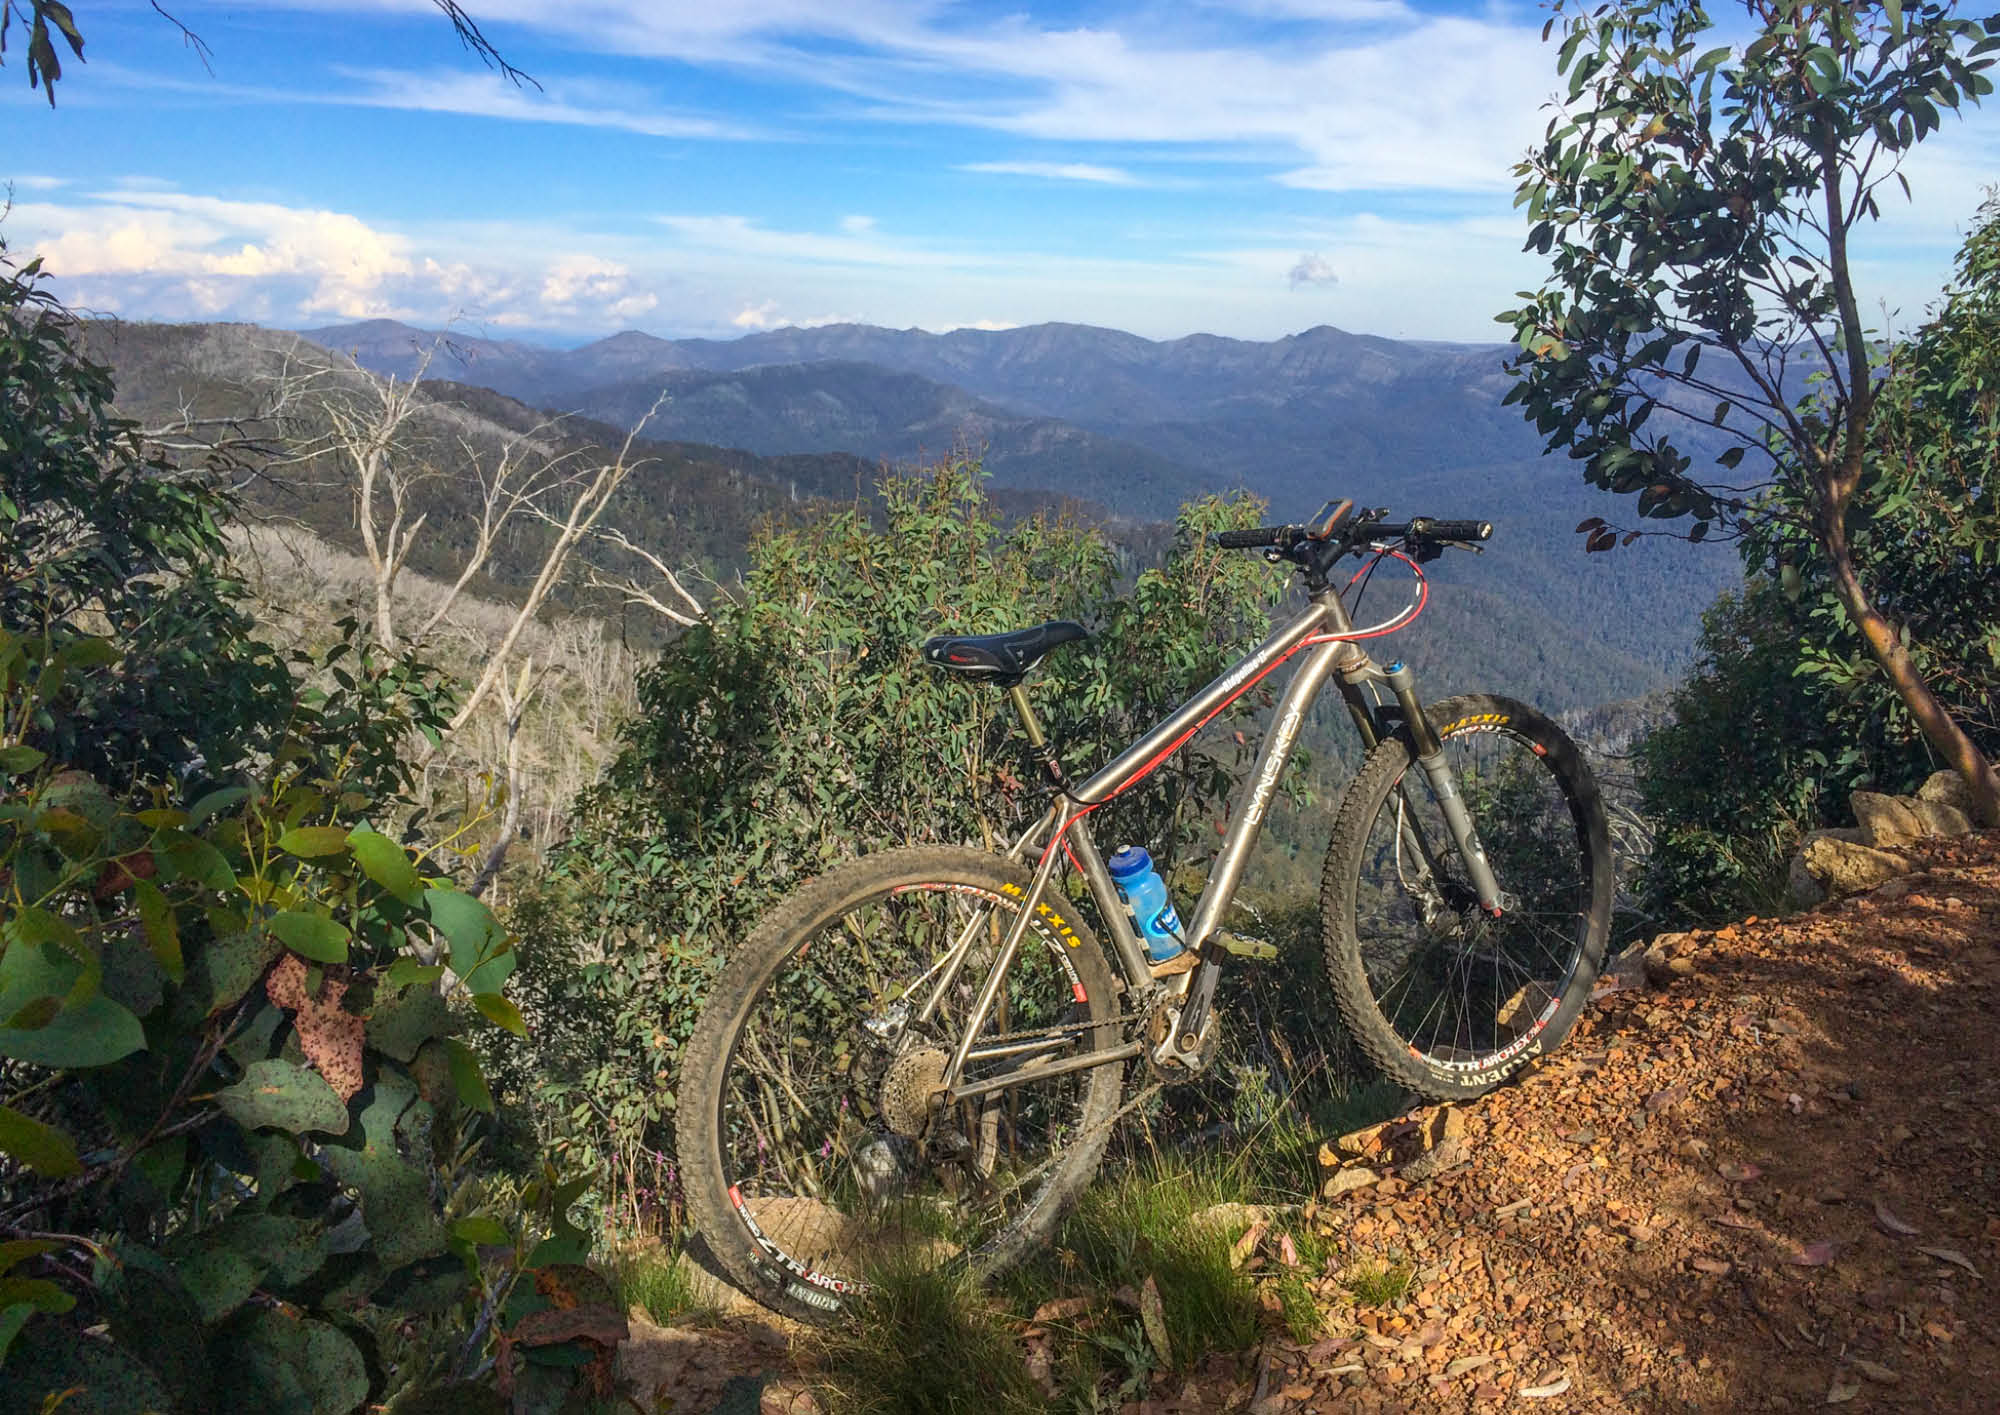 Top 10 coolest Mountain Bike Trails